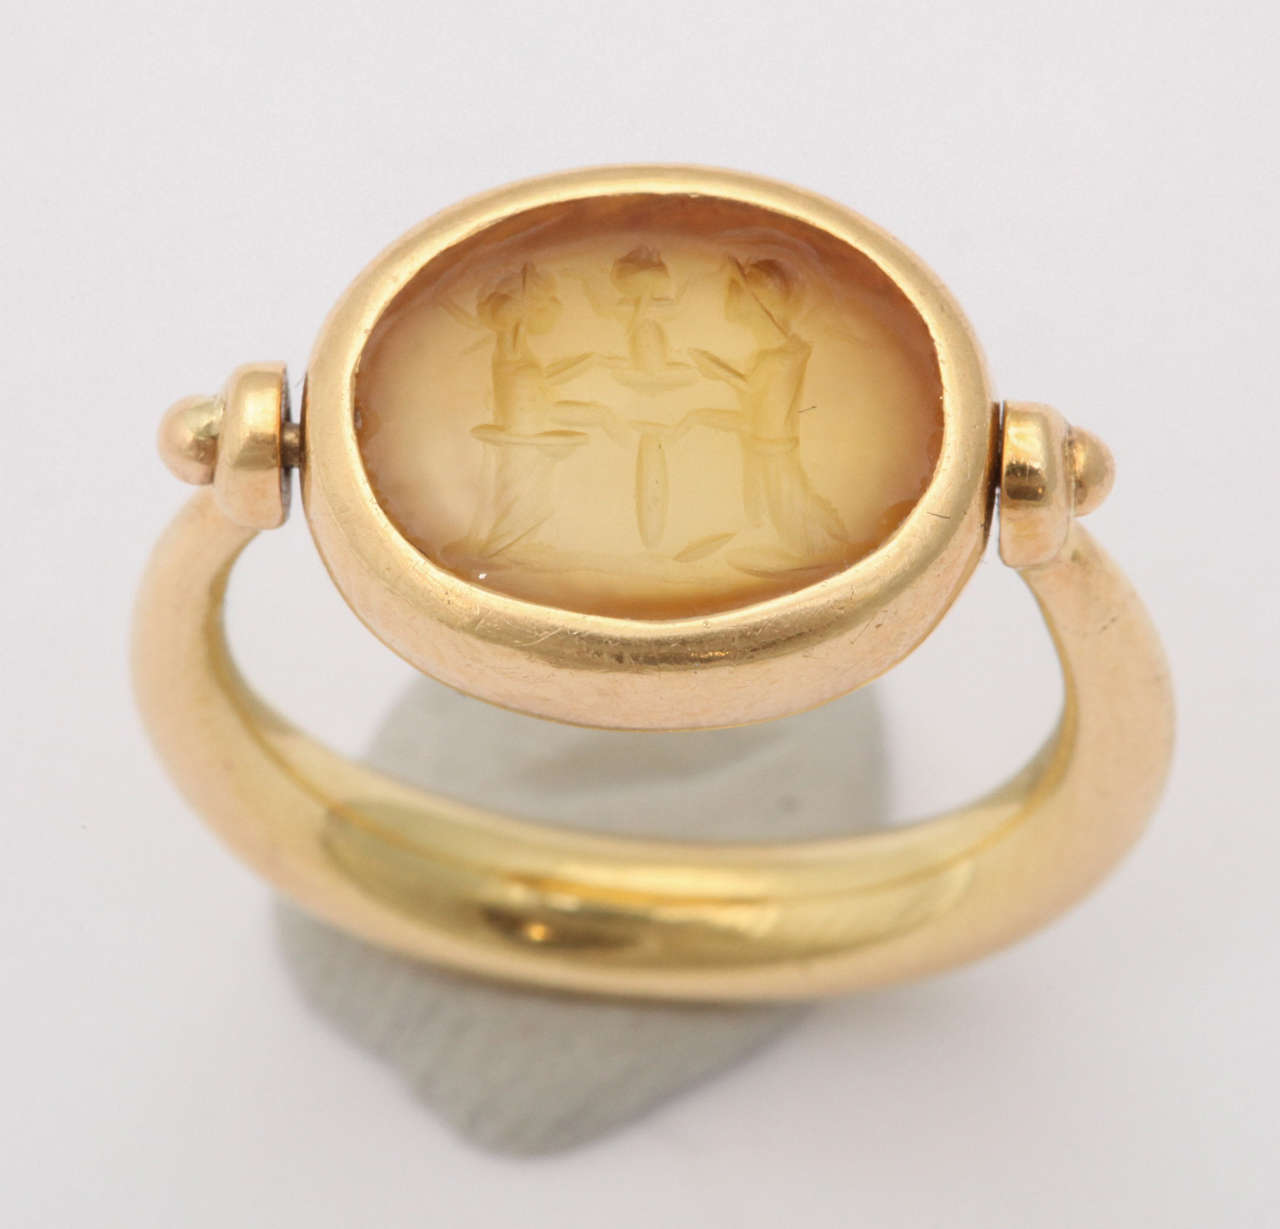 Splendid Pinky  Ring set in Oval 18kt Yellow Gold swivel mounting. Lovely Intaglio of two opposing Gods & a central Figure. Inscribed Roma  2 sec d C & 750 & control numbers.